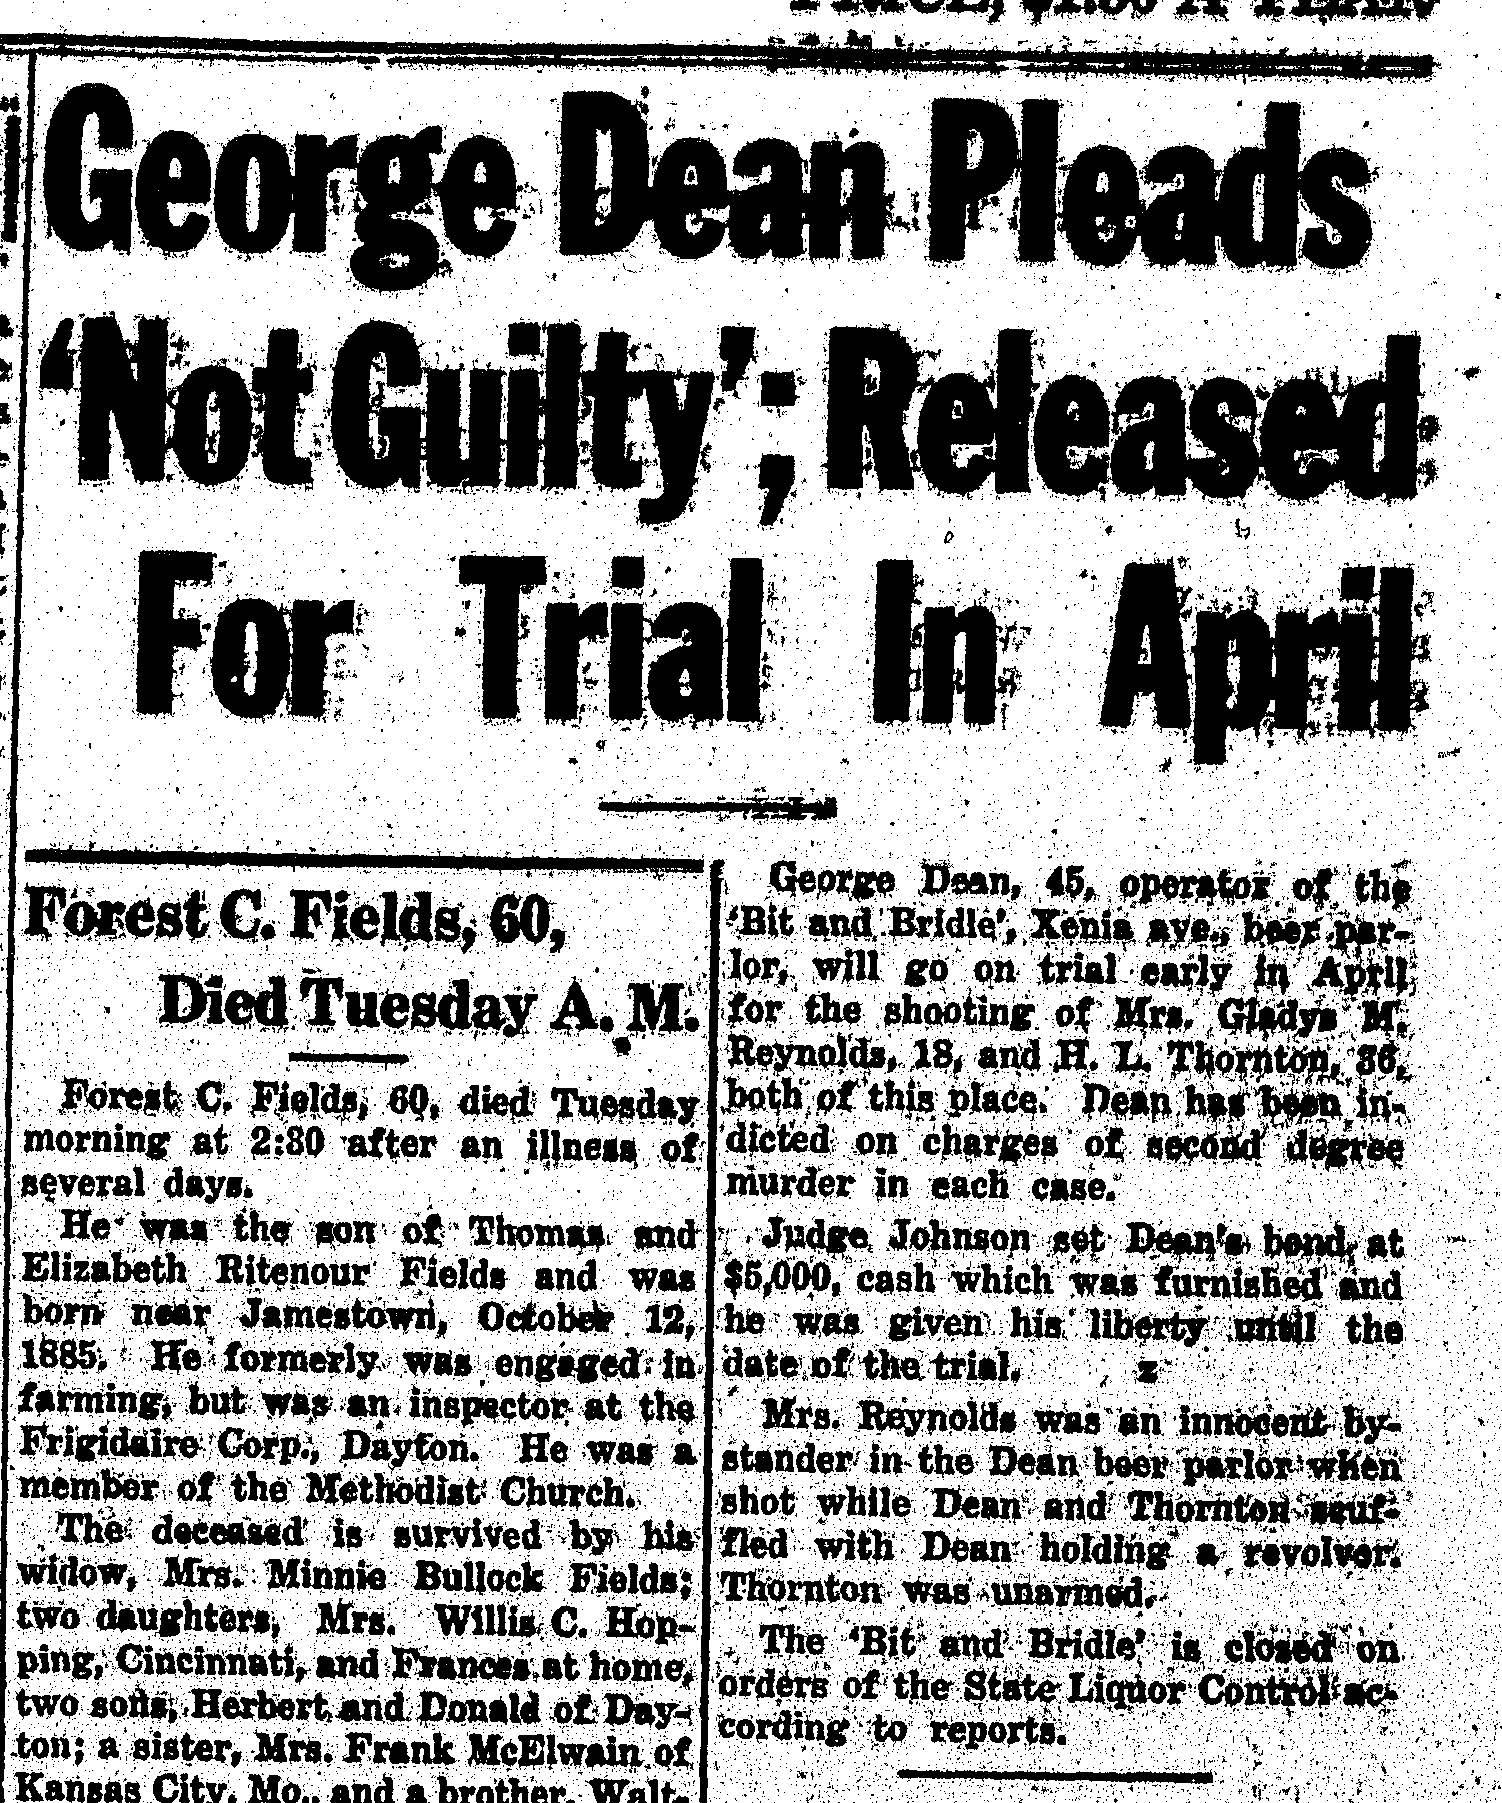 Fig 5. Article from The Cedarville Herald, dated March 22, 1946 (JPG)